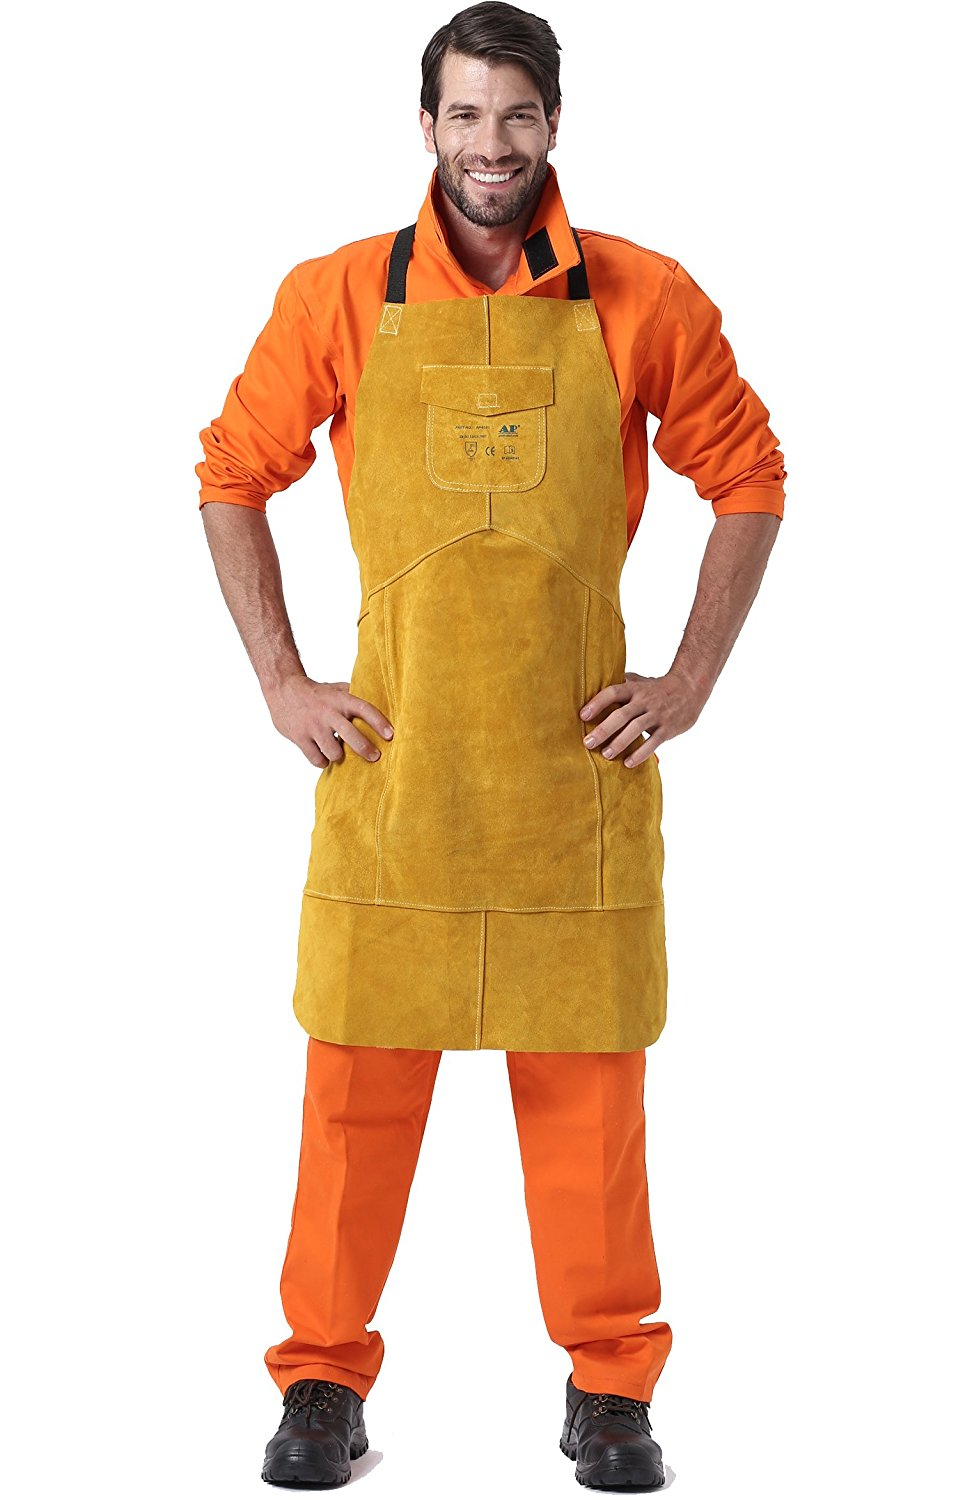 Welding Apron Premium Leather Welder Protect Clothing Carpenter Blacksmith Gardening Work Cowhide Clothing 95X56CM Golden Color<br>